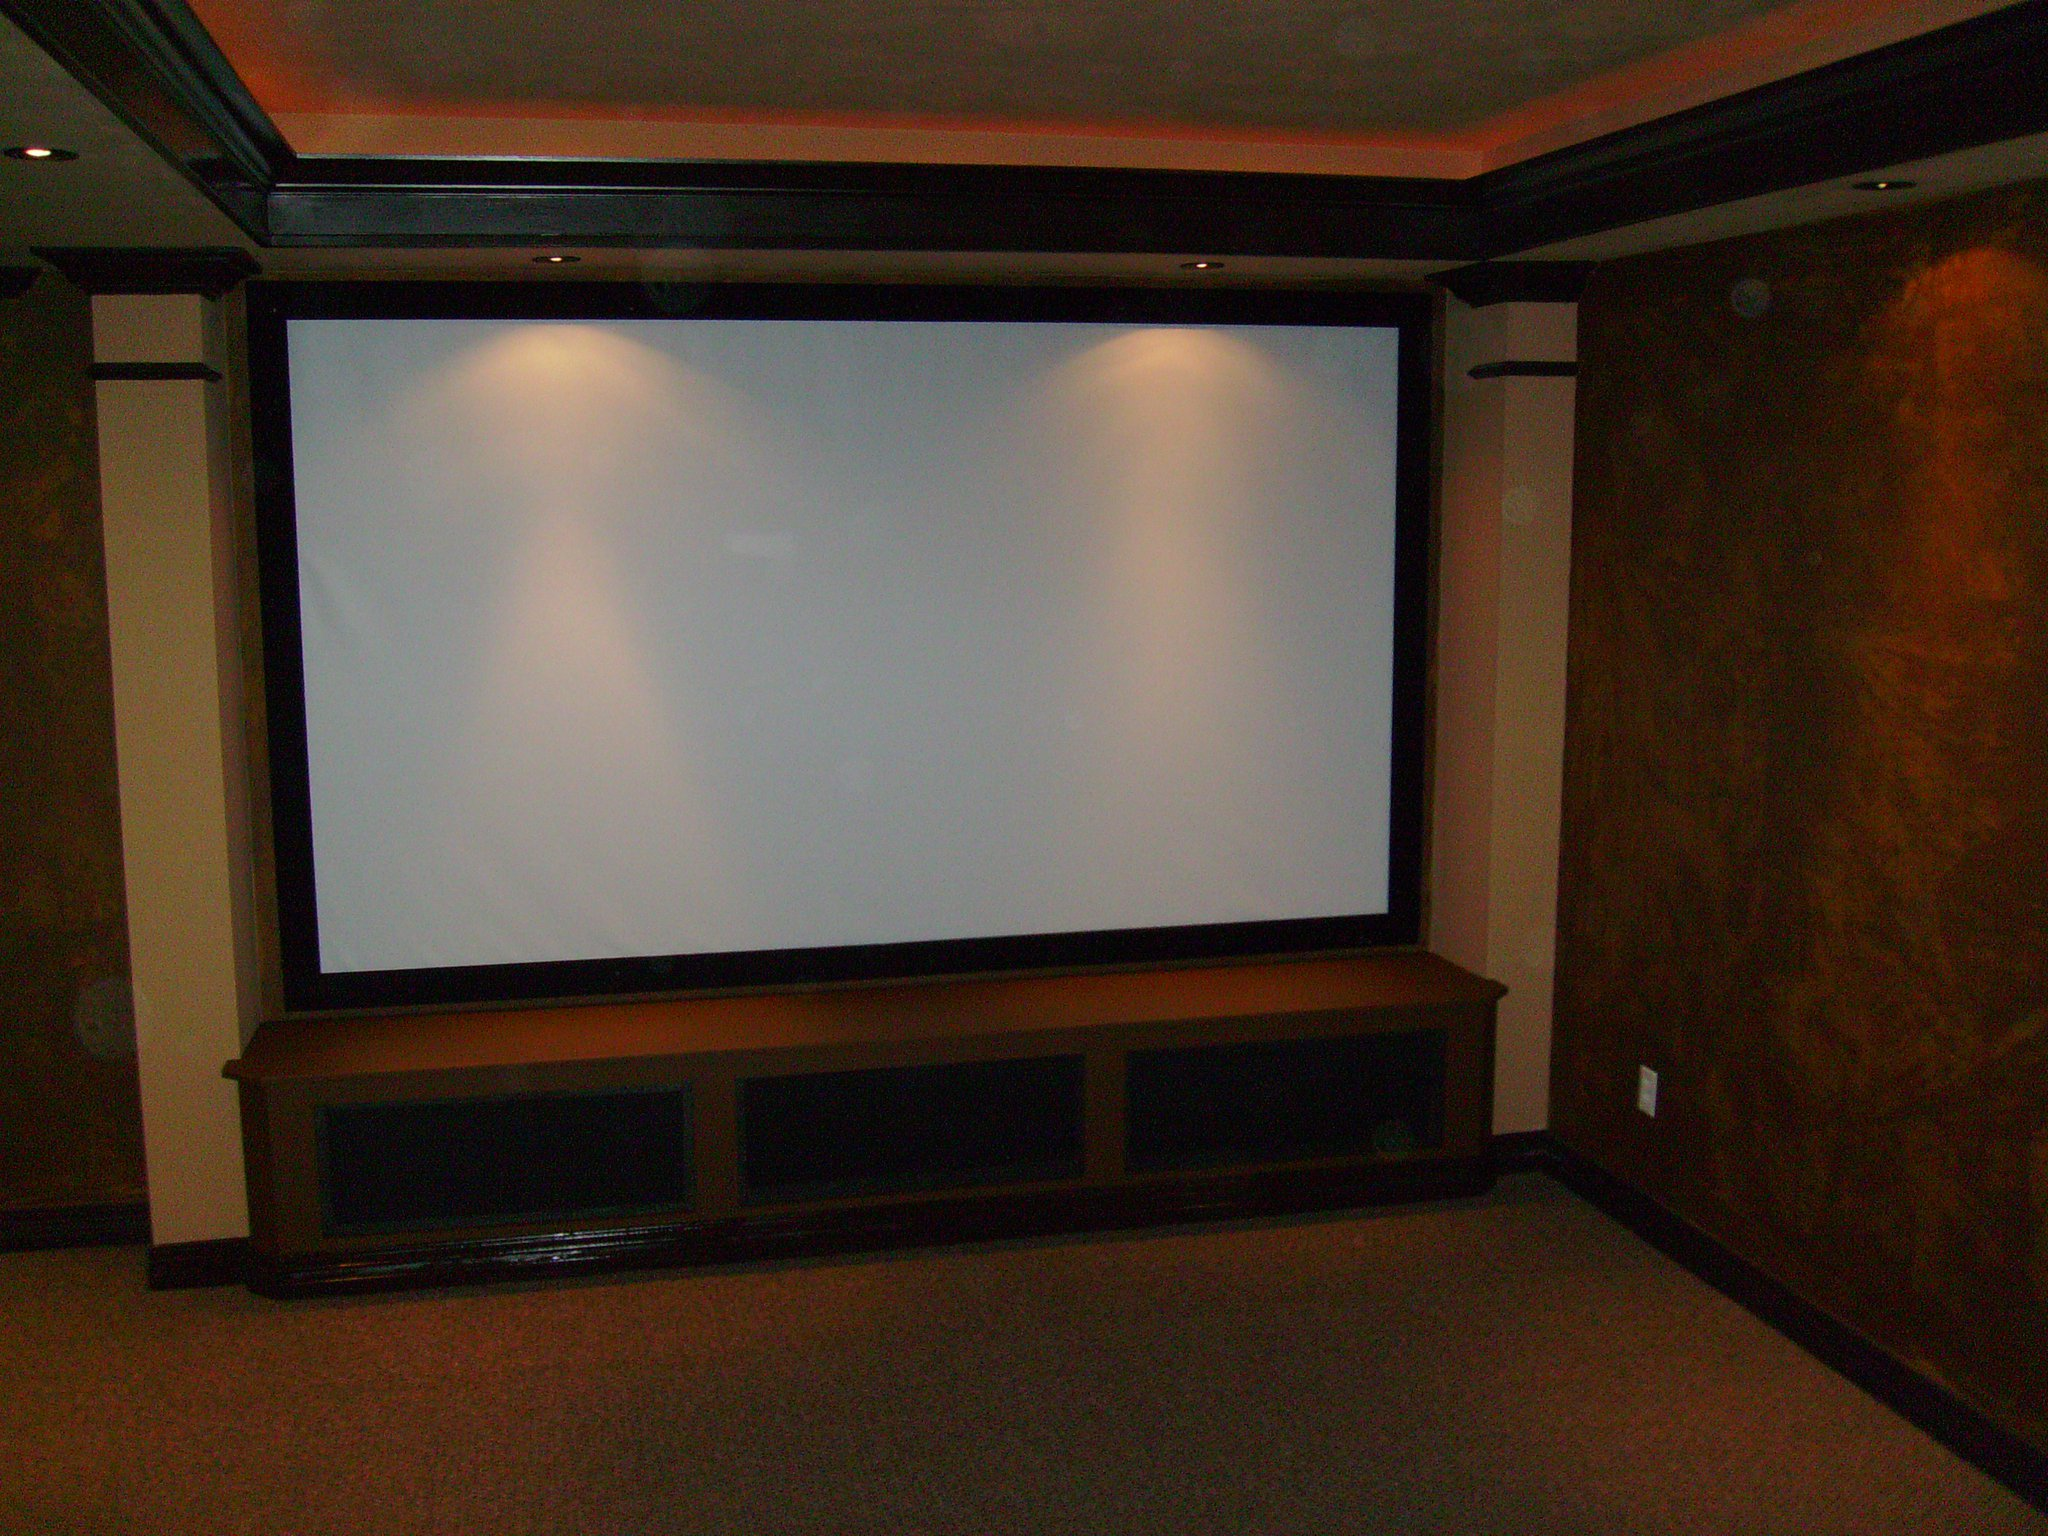 media rooms with big screen tv interior design company. Black Bedroom Furniture Sets. Home Design Ideas